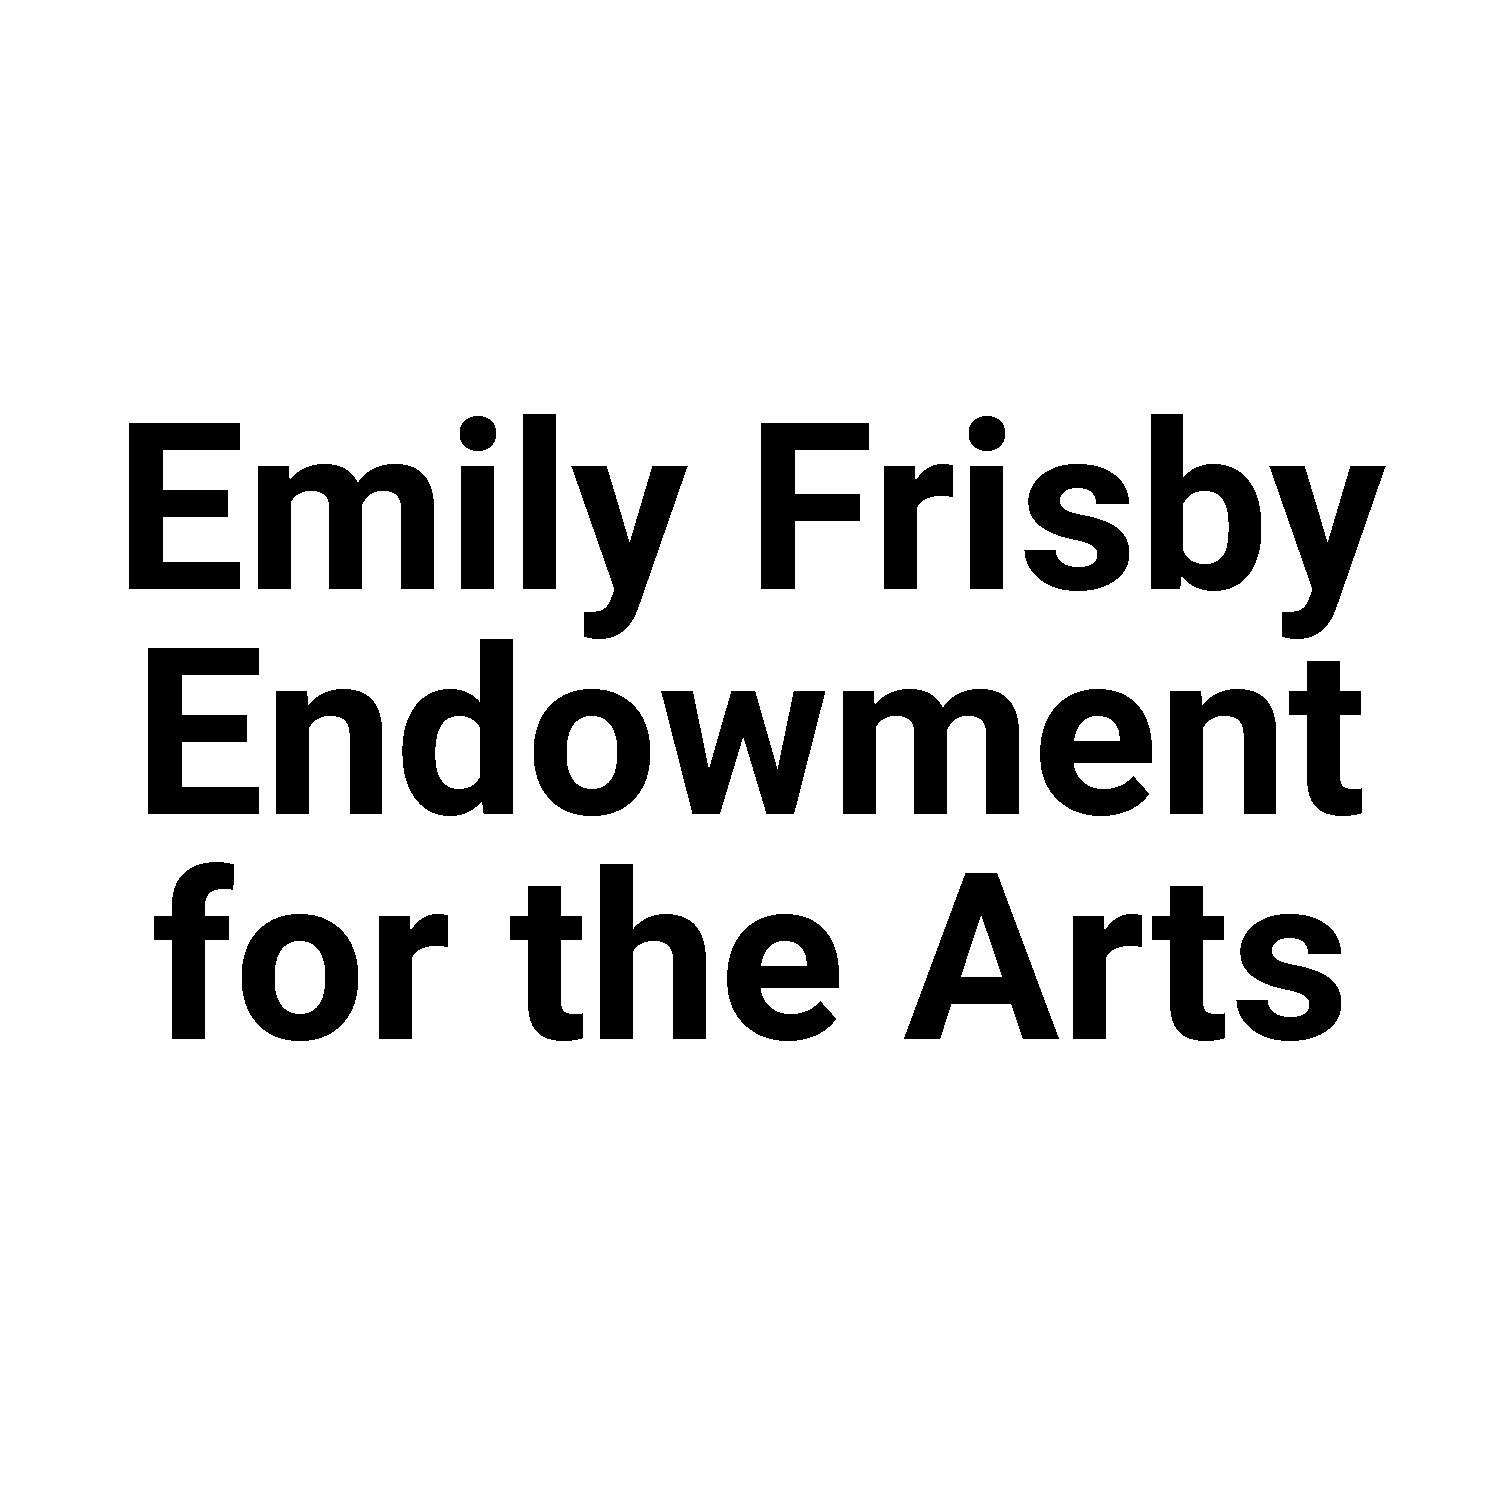 Emily Frisby Endowment for the Arts